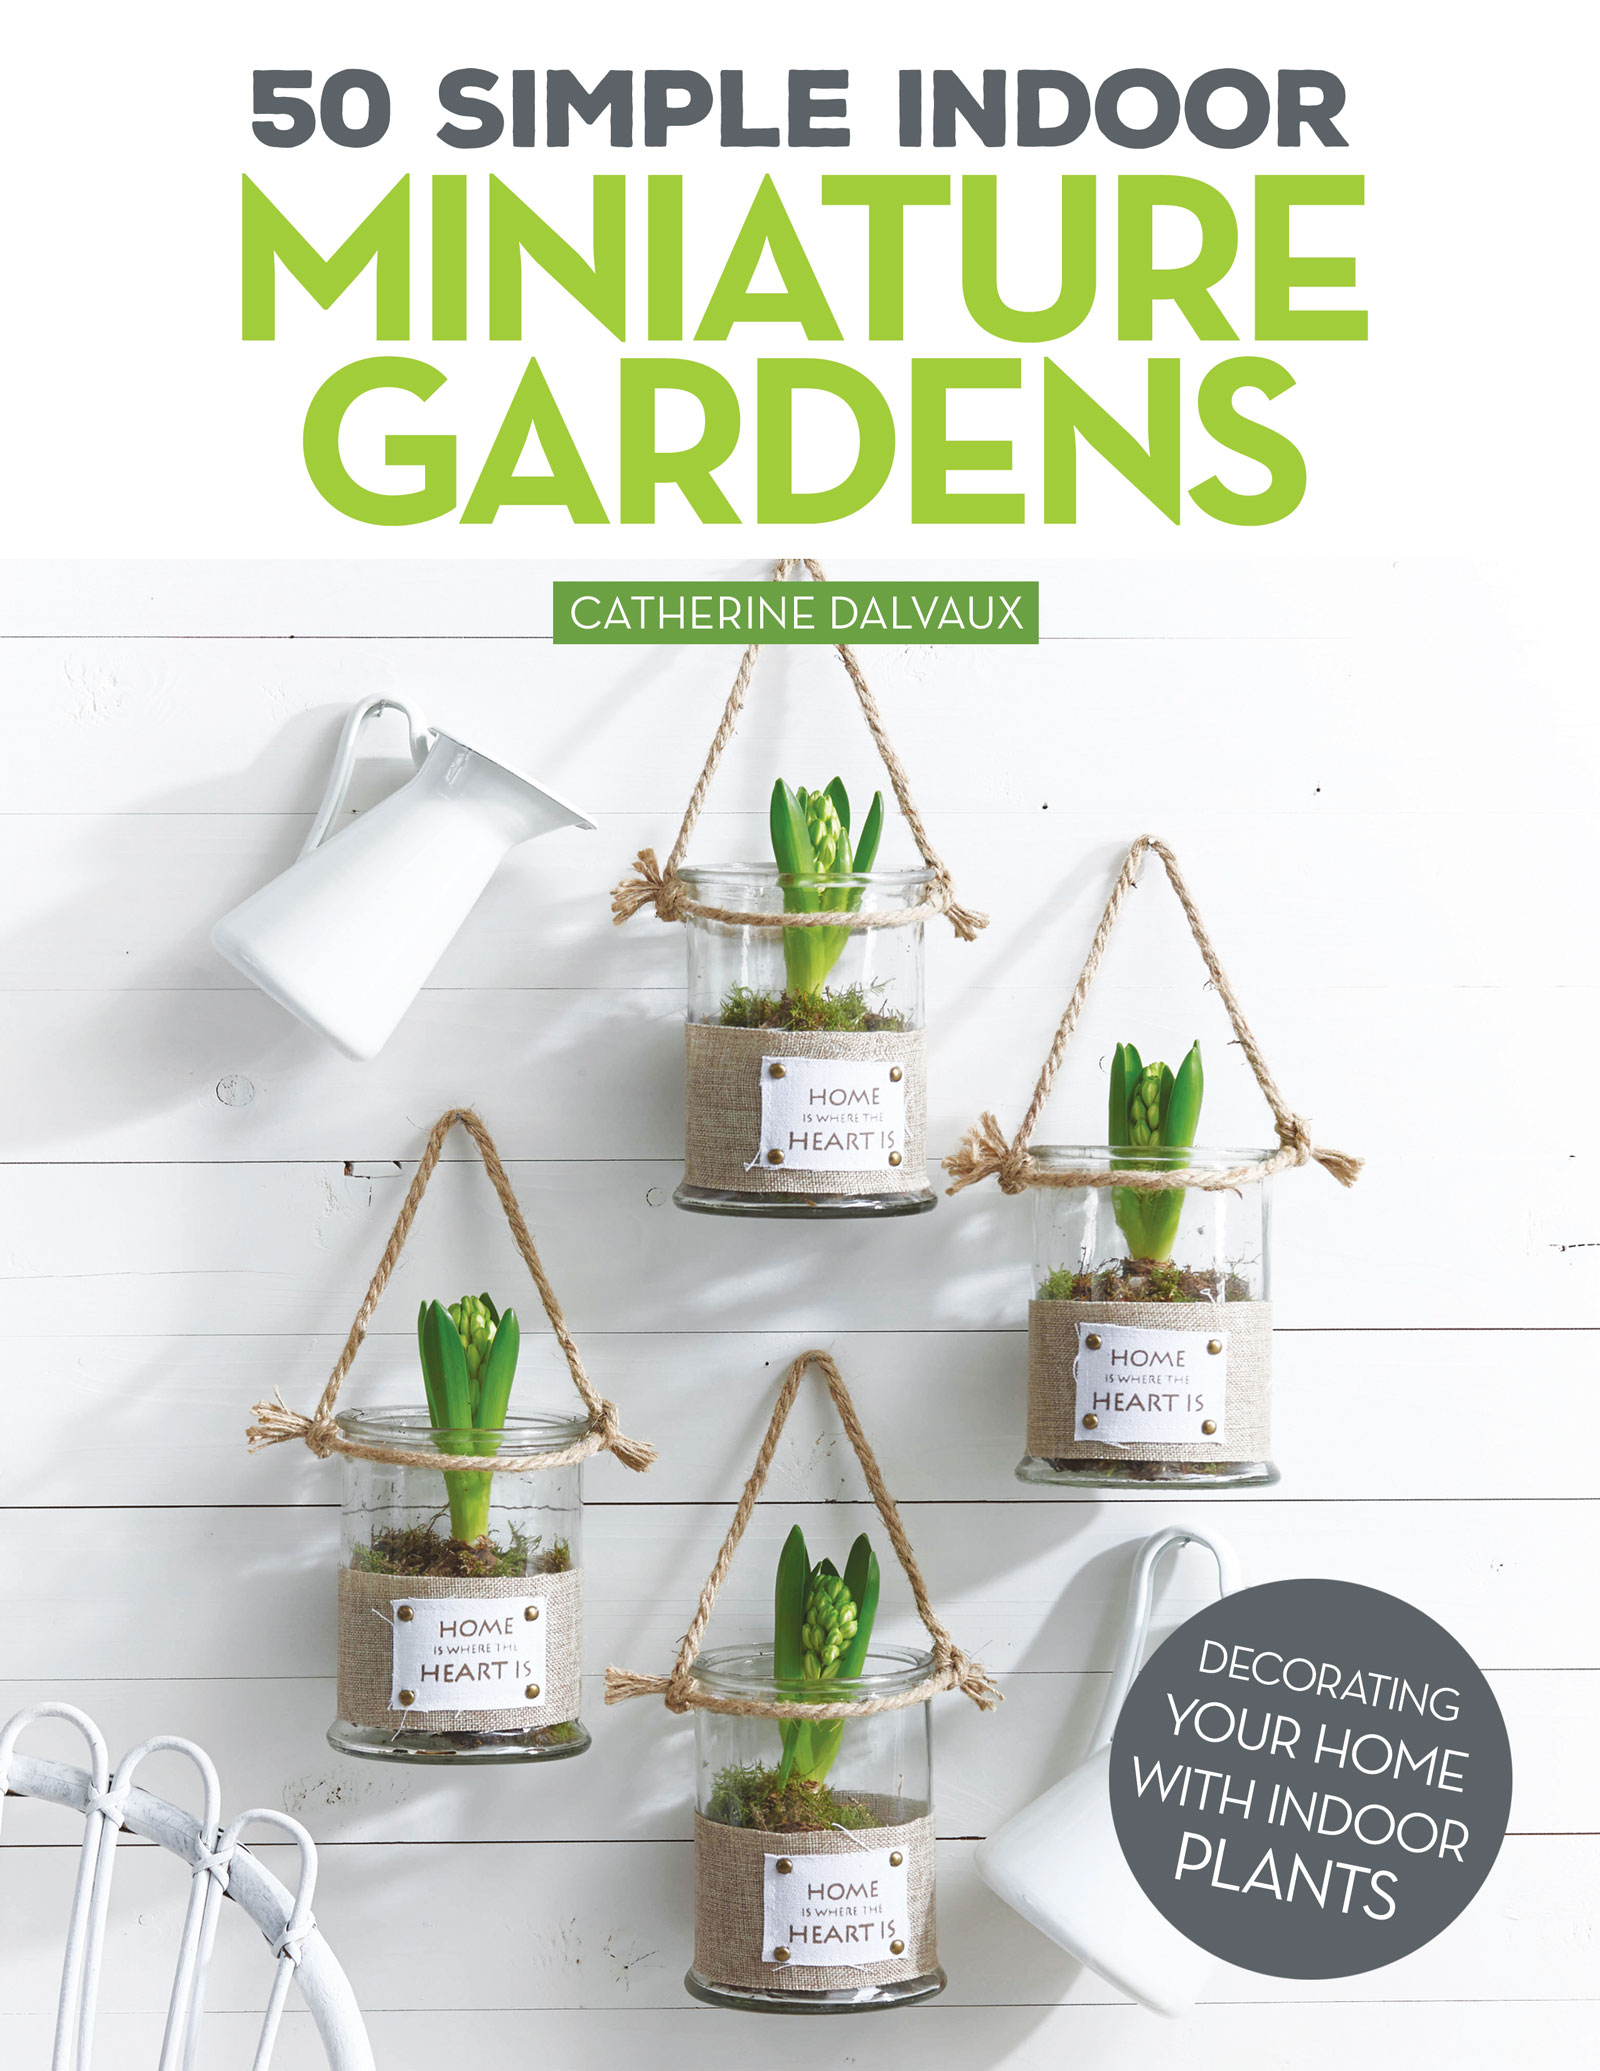 50 Simple Indoor Miniature Gardens